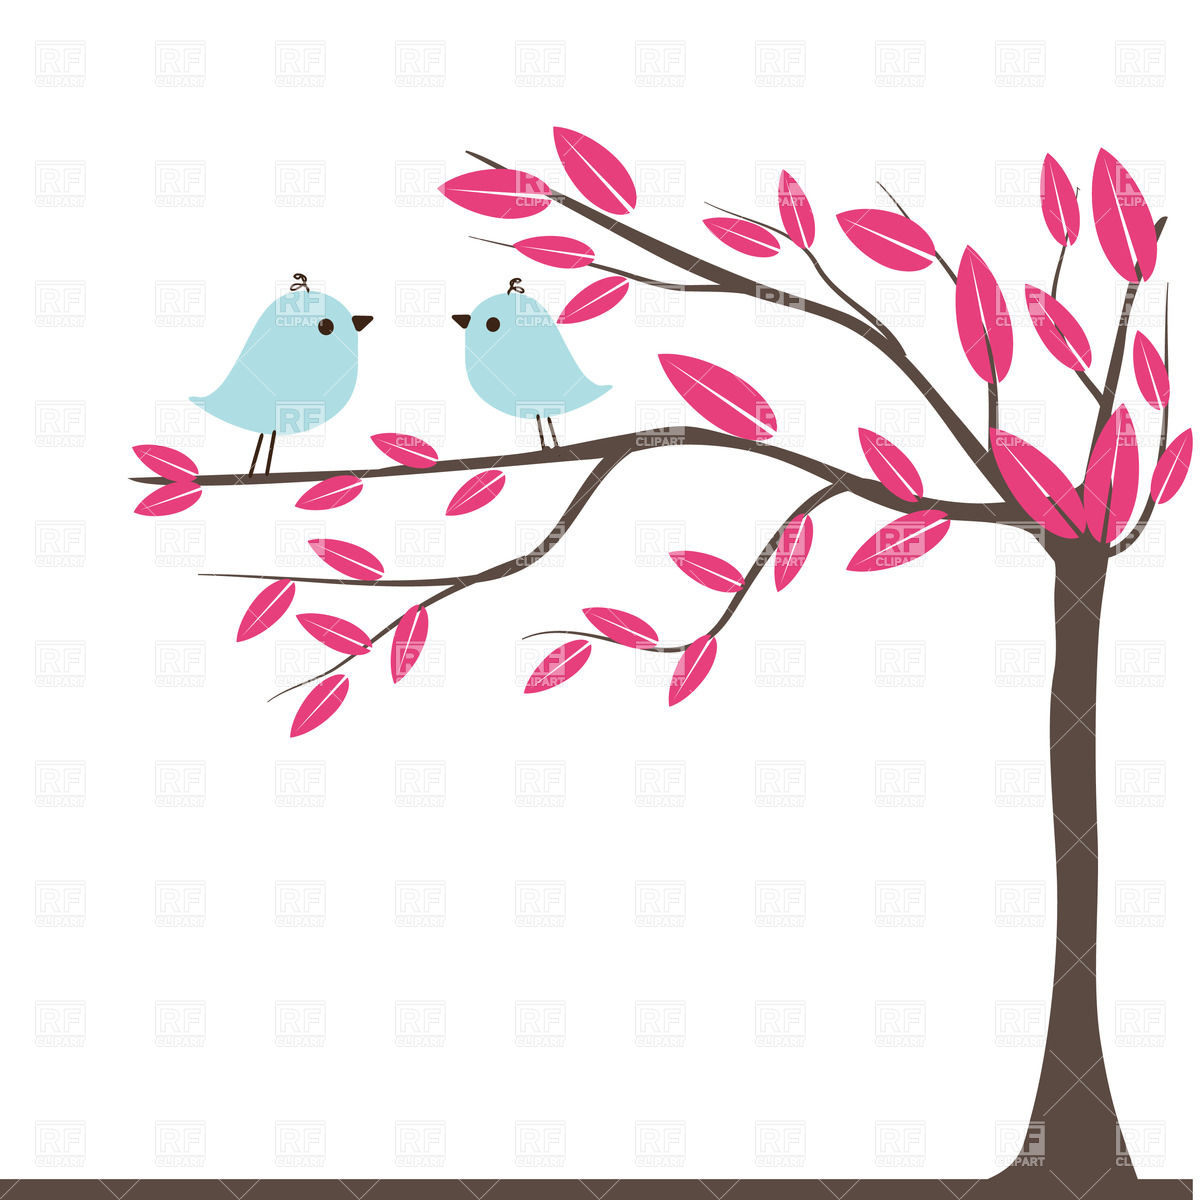 Clipart birds tree svg picture free stock Clipart birds tree svg - ClipartFox picture free stock